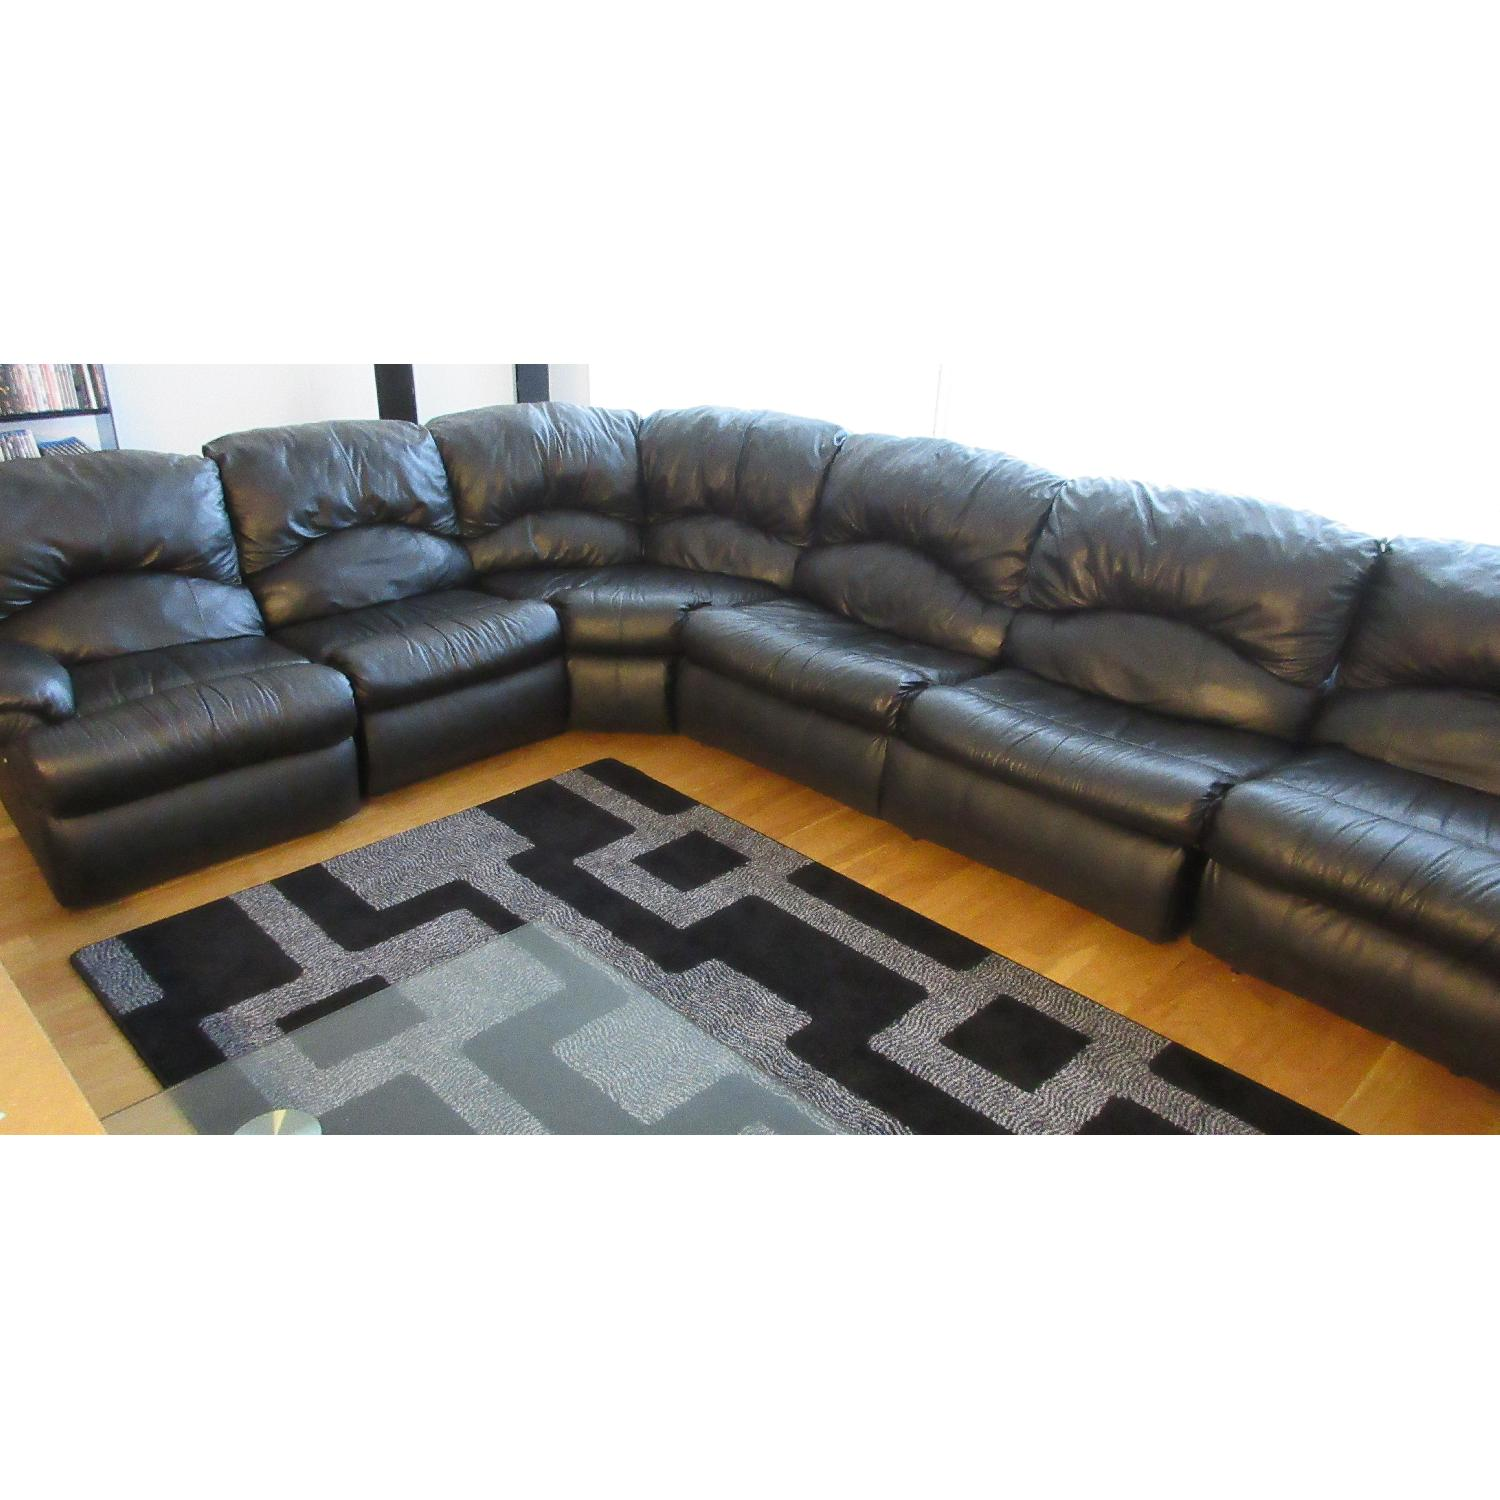 Klaussner Phoenix Sectional w/ Recliners & Fold Out Bed - image-9